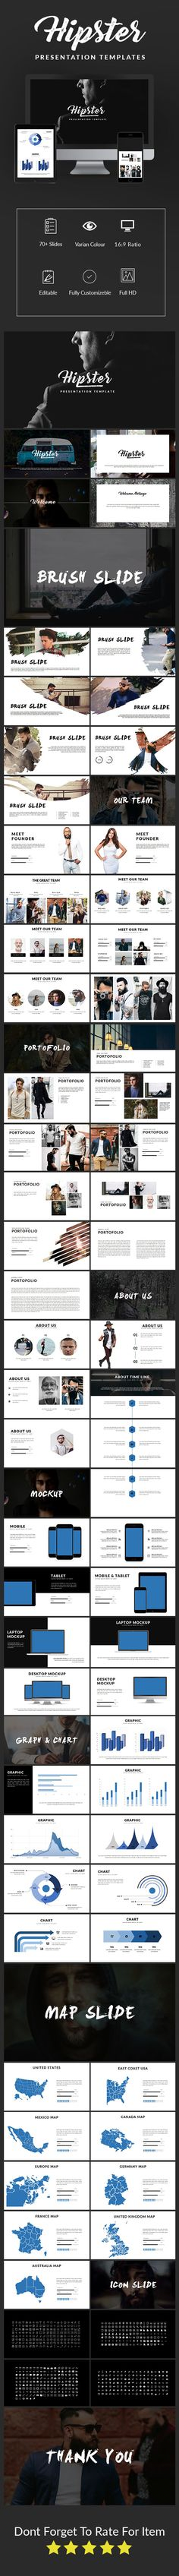 Mojo power point presentation power point presentation hipster presentation template toneelgroepblik Image collections